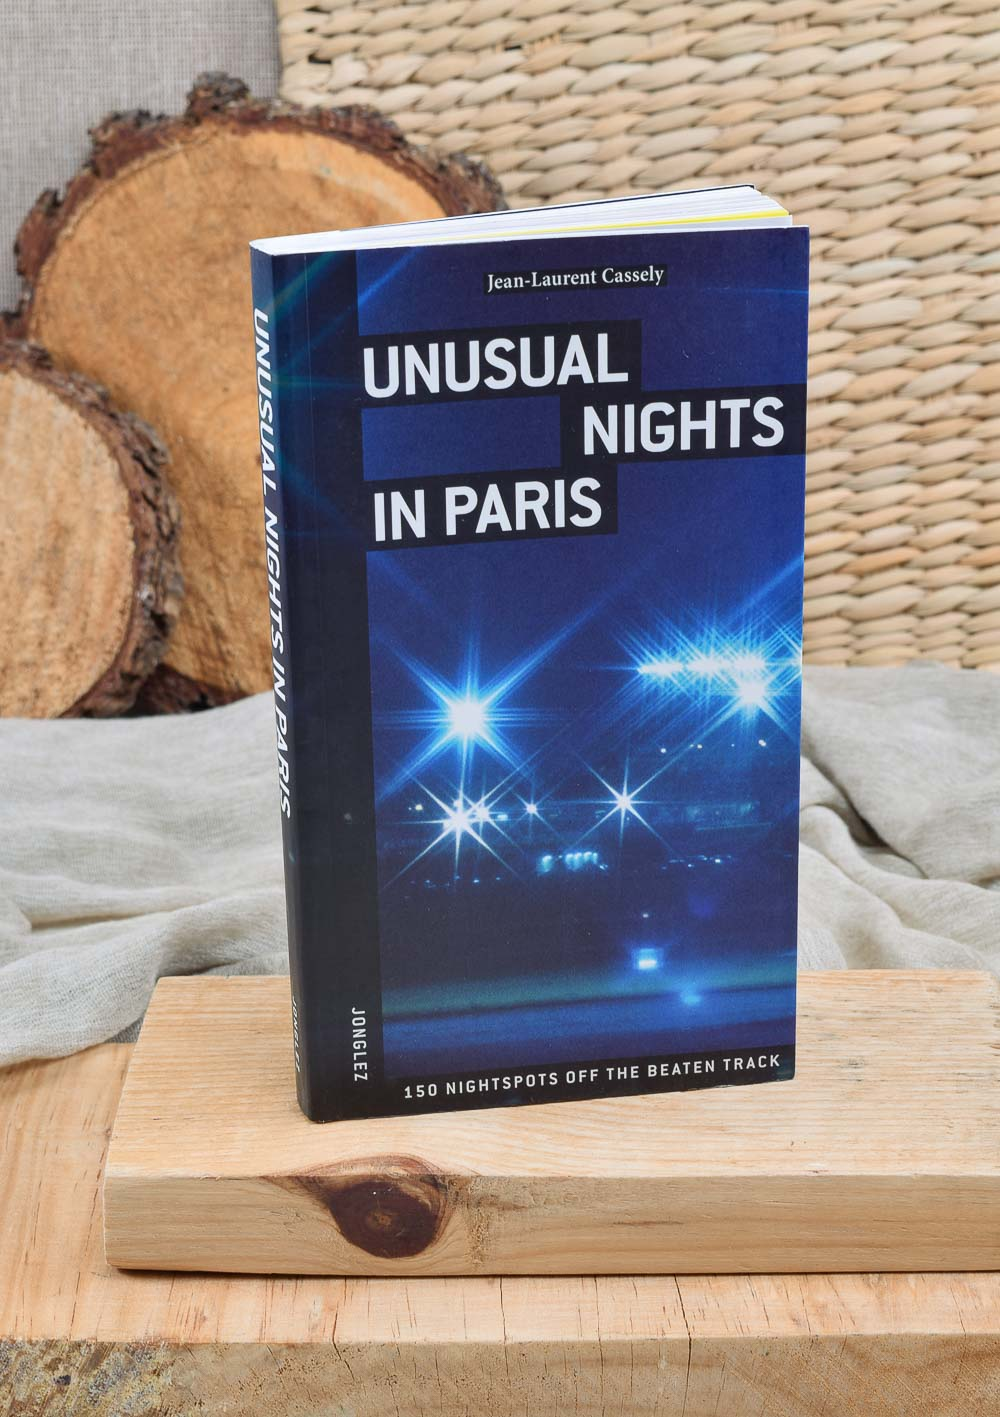 UNUSUAL NIGHTS IN PARIS